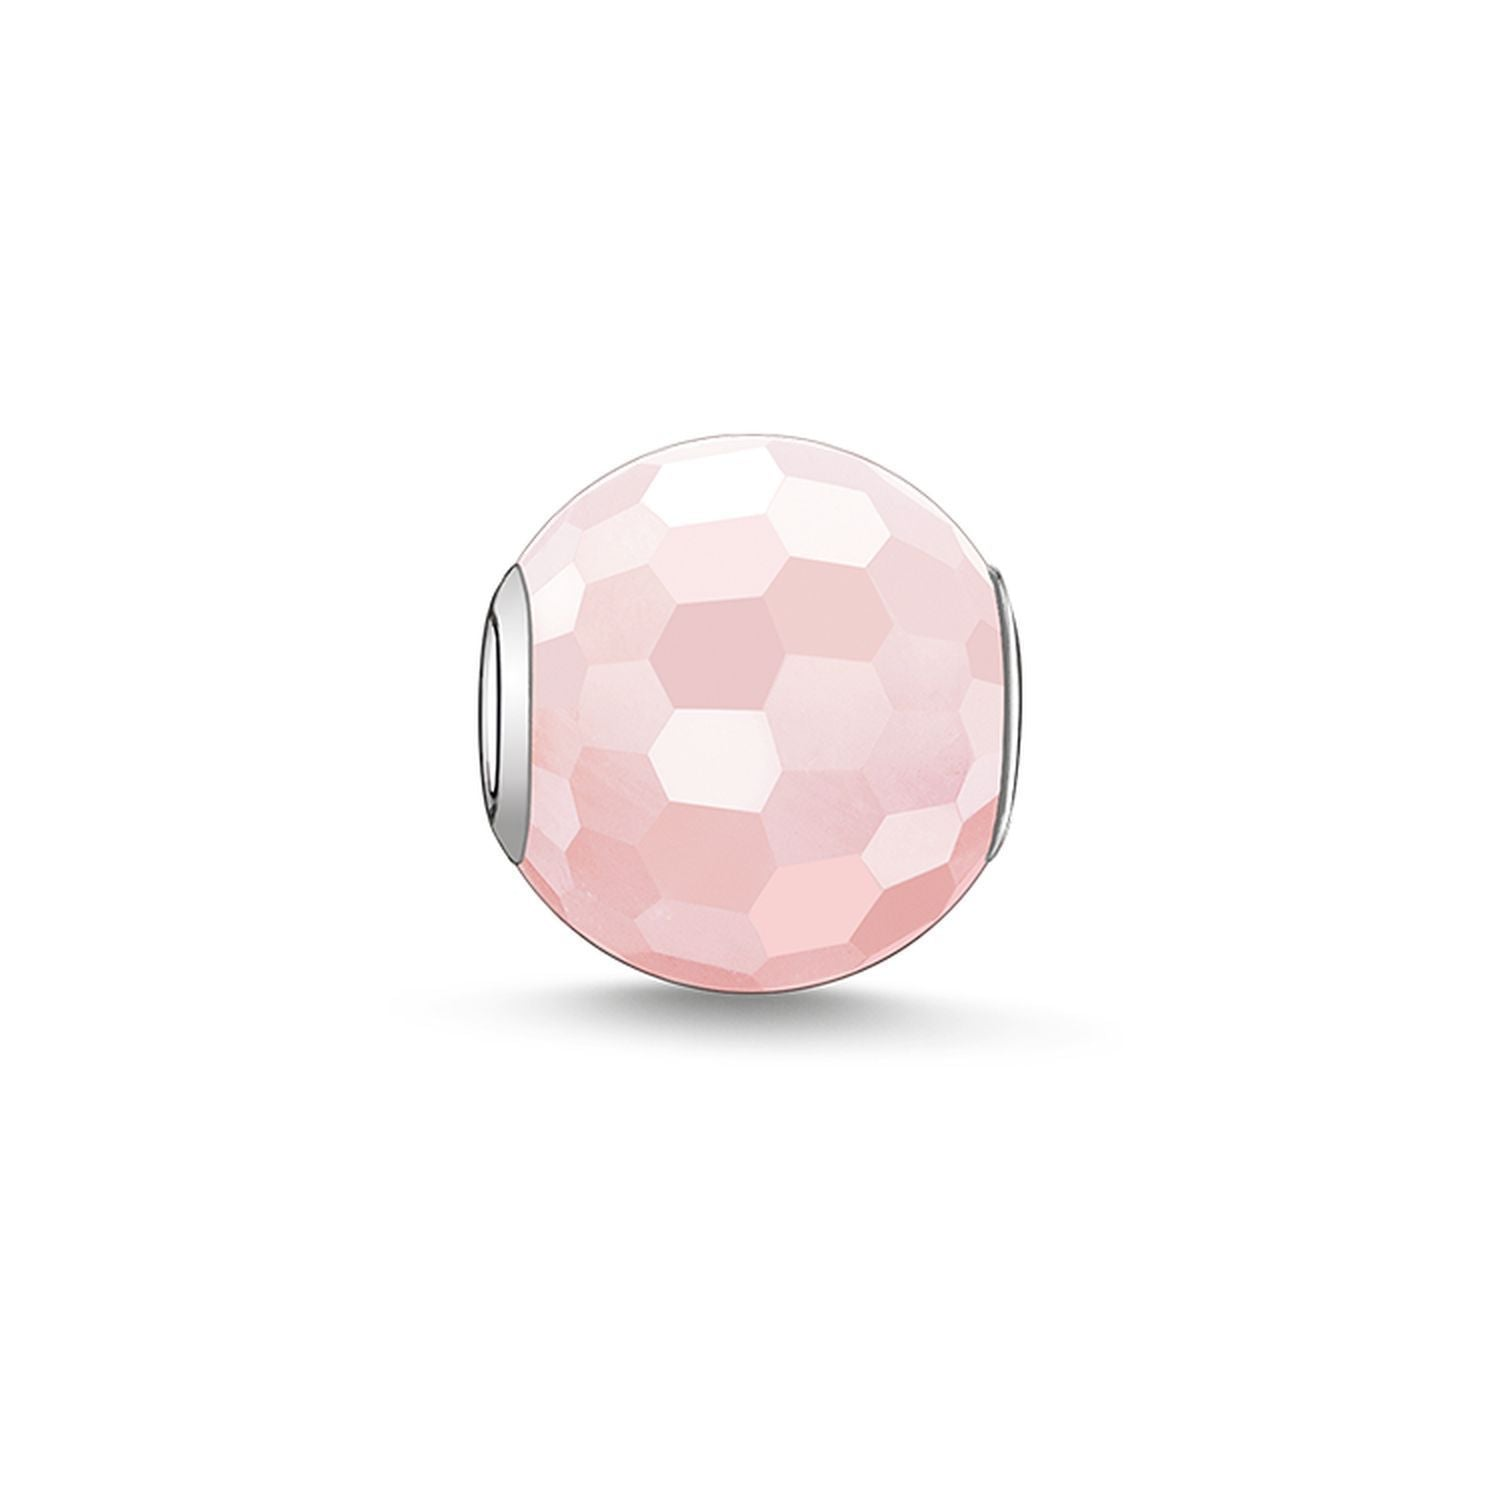 Faceted Rose Quartz Thomas Sabo Karma Bead K0005-034-9